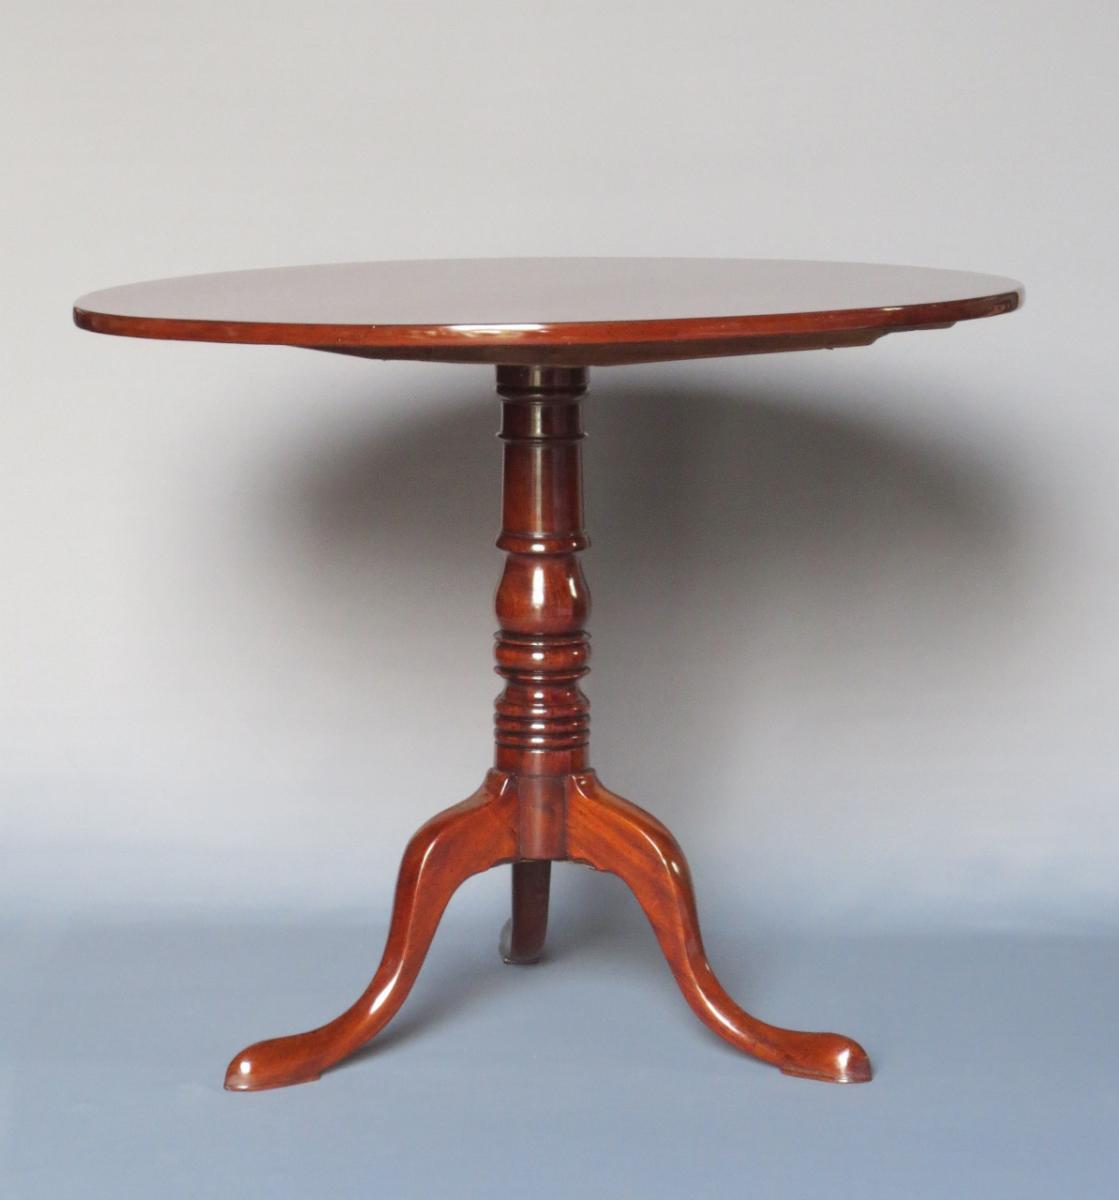 Pedestal Table In Mahogany, Empire Period.